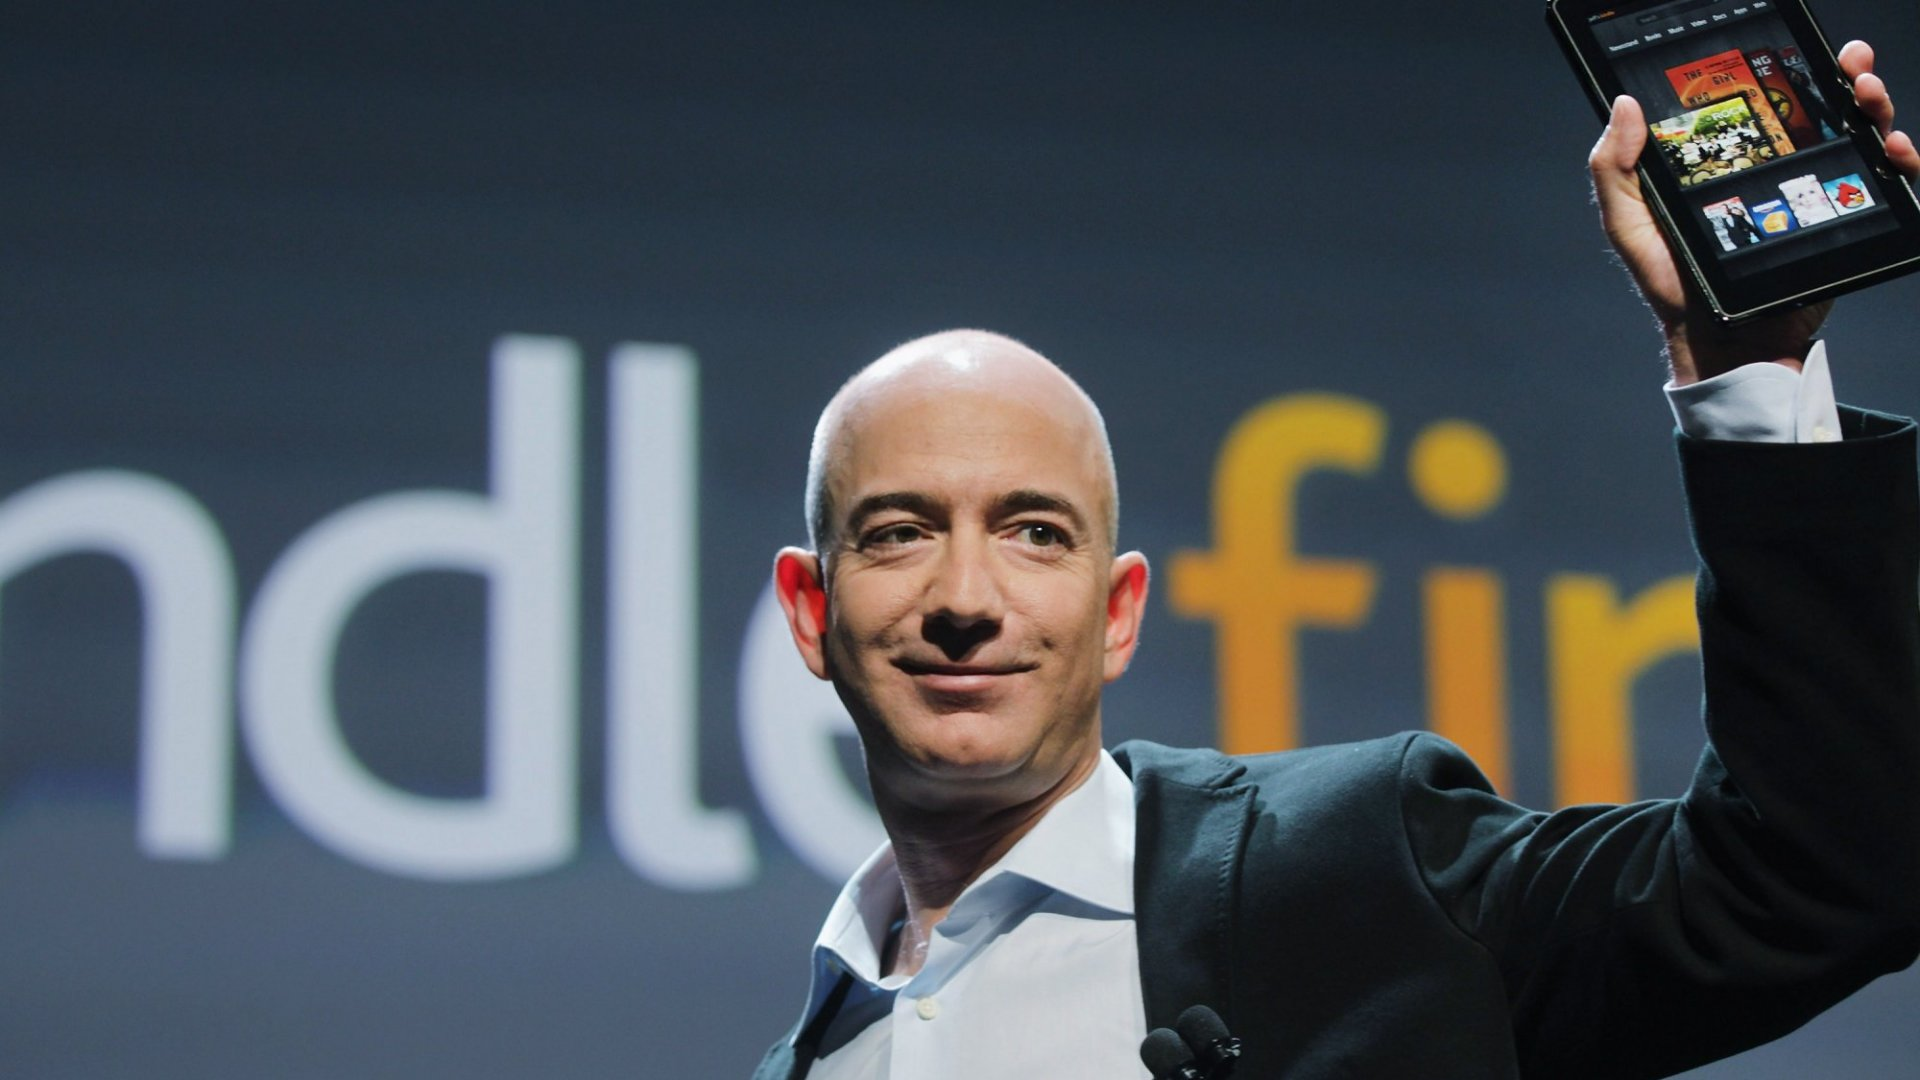 3 Reasons Amazon's Culture Won't Work for You, According to Jeff Bezos